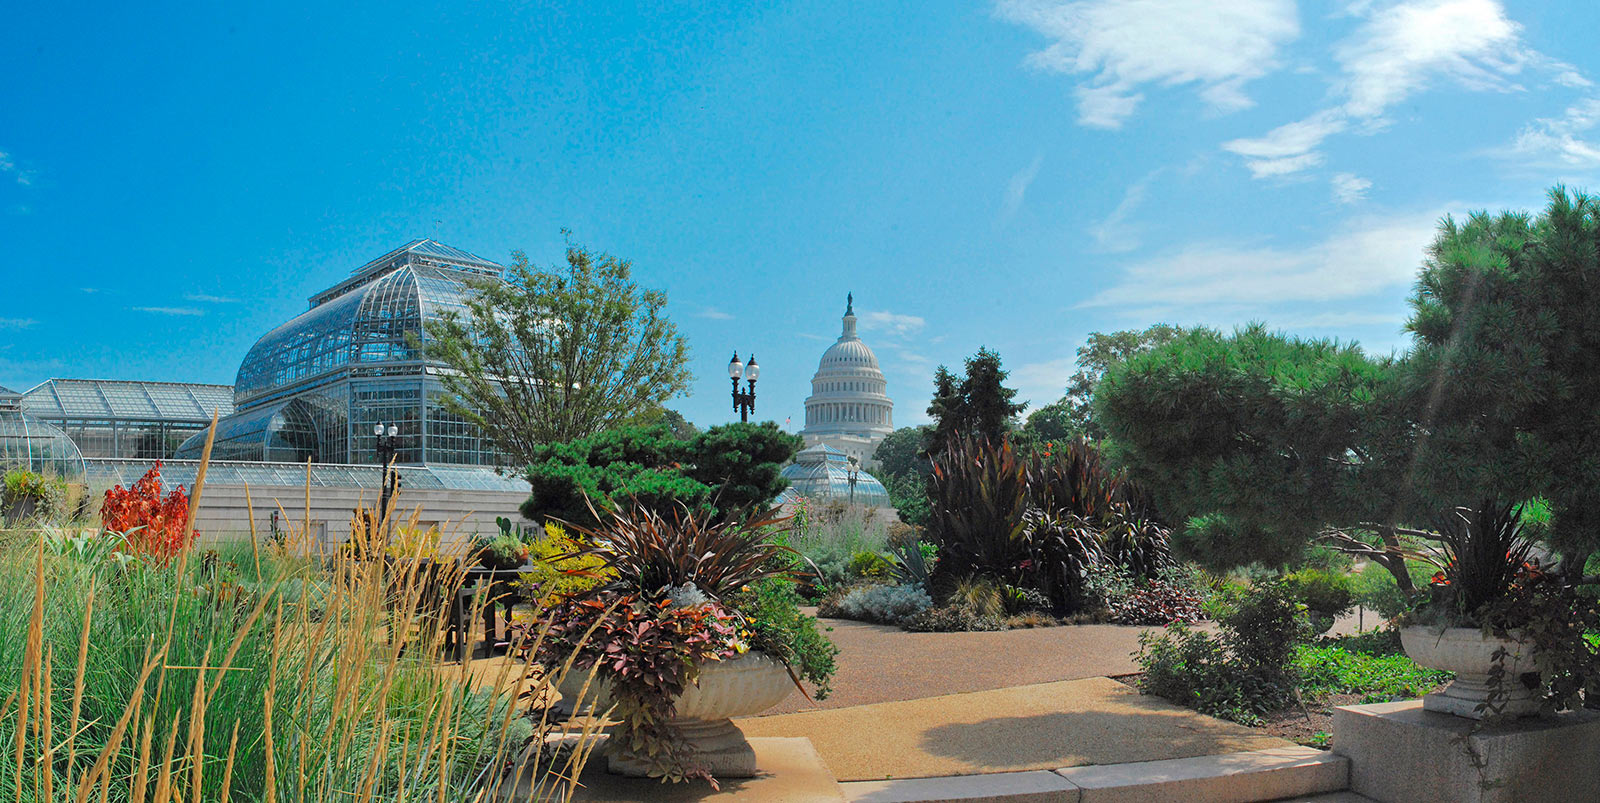 U.S. Botanic Garden - Free Things to Do in Washington, DC